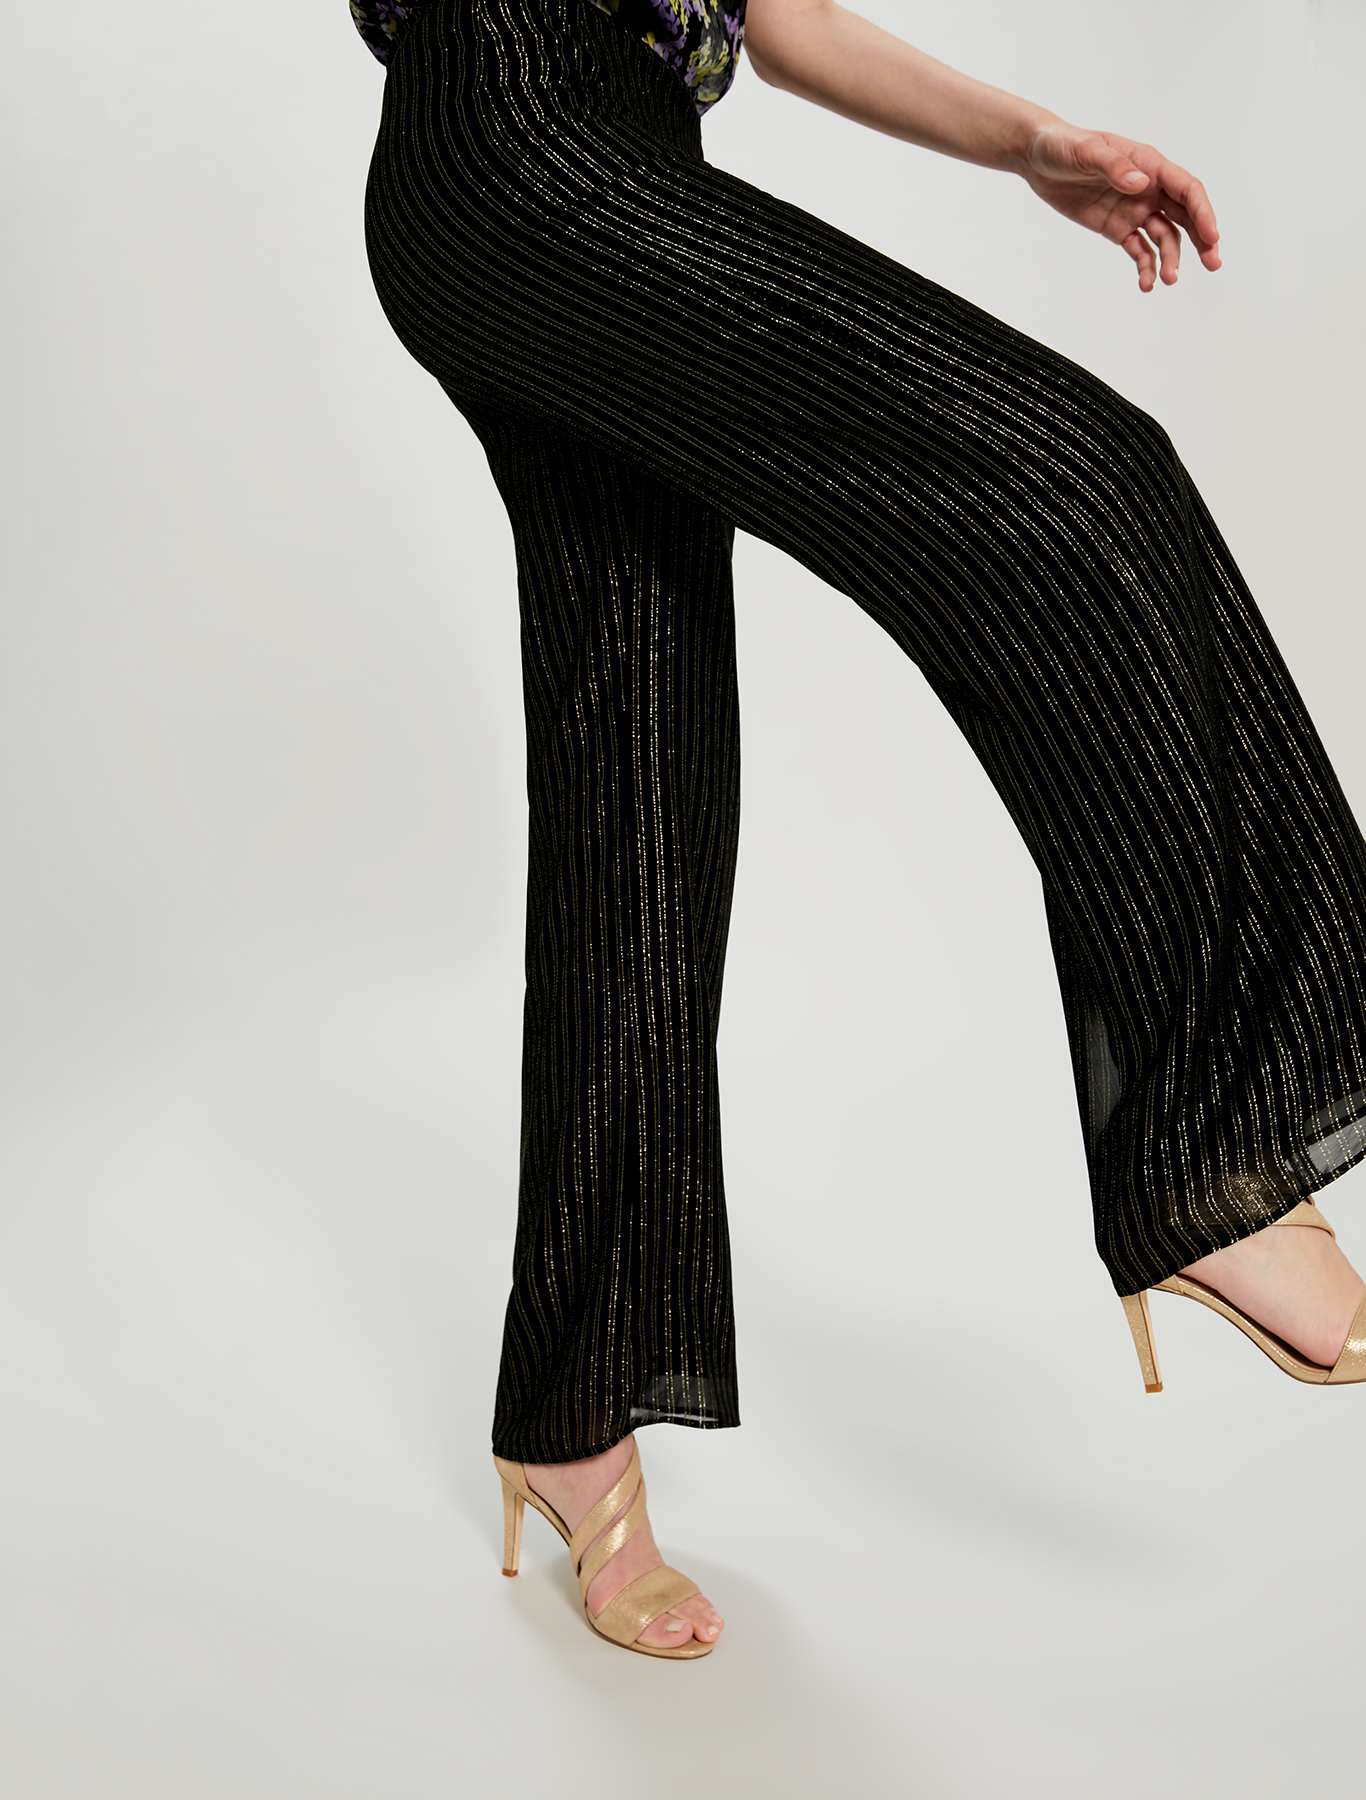 Lamé chalk-stripe palazzo pants - black pattern - pennyblack